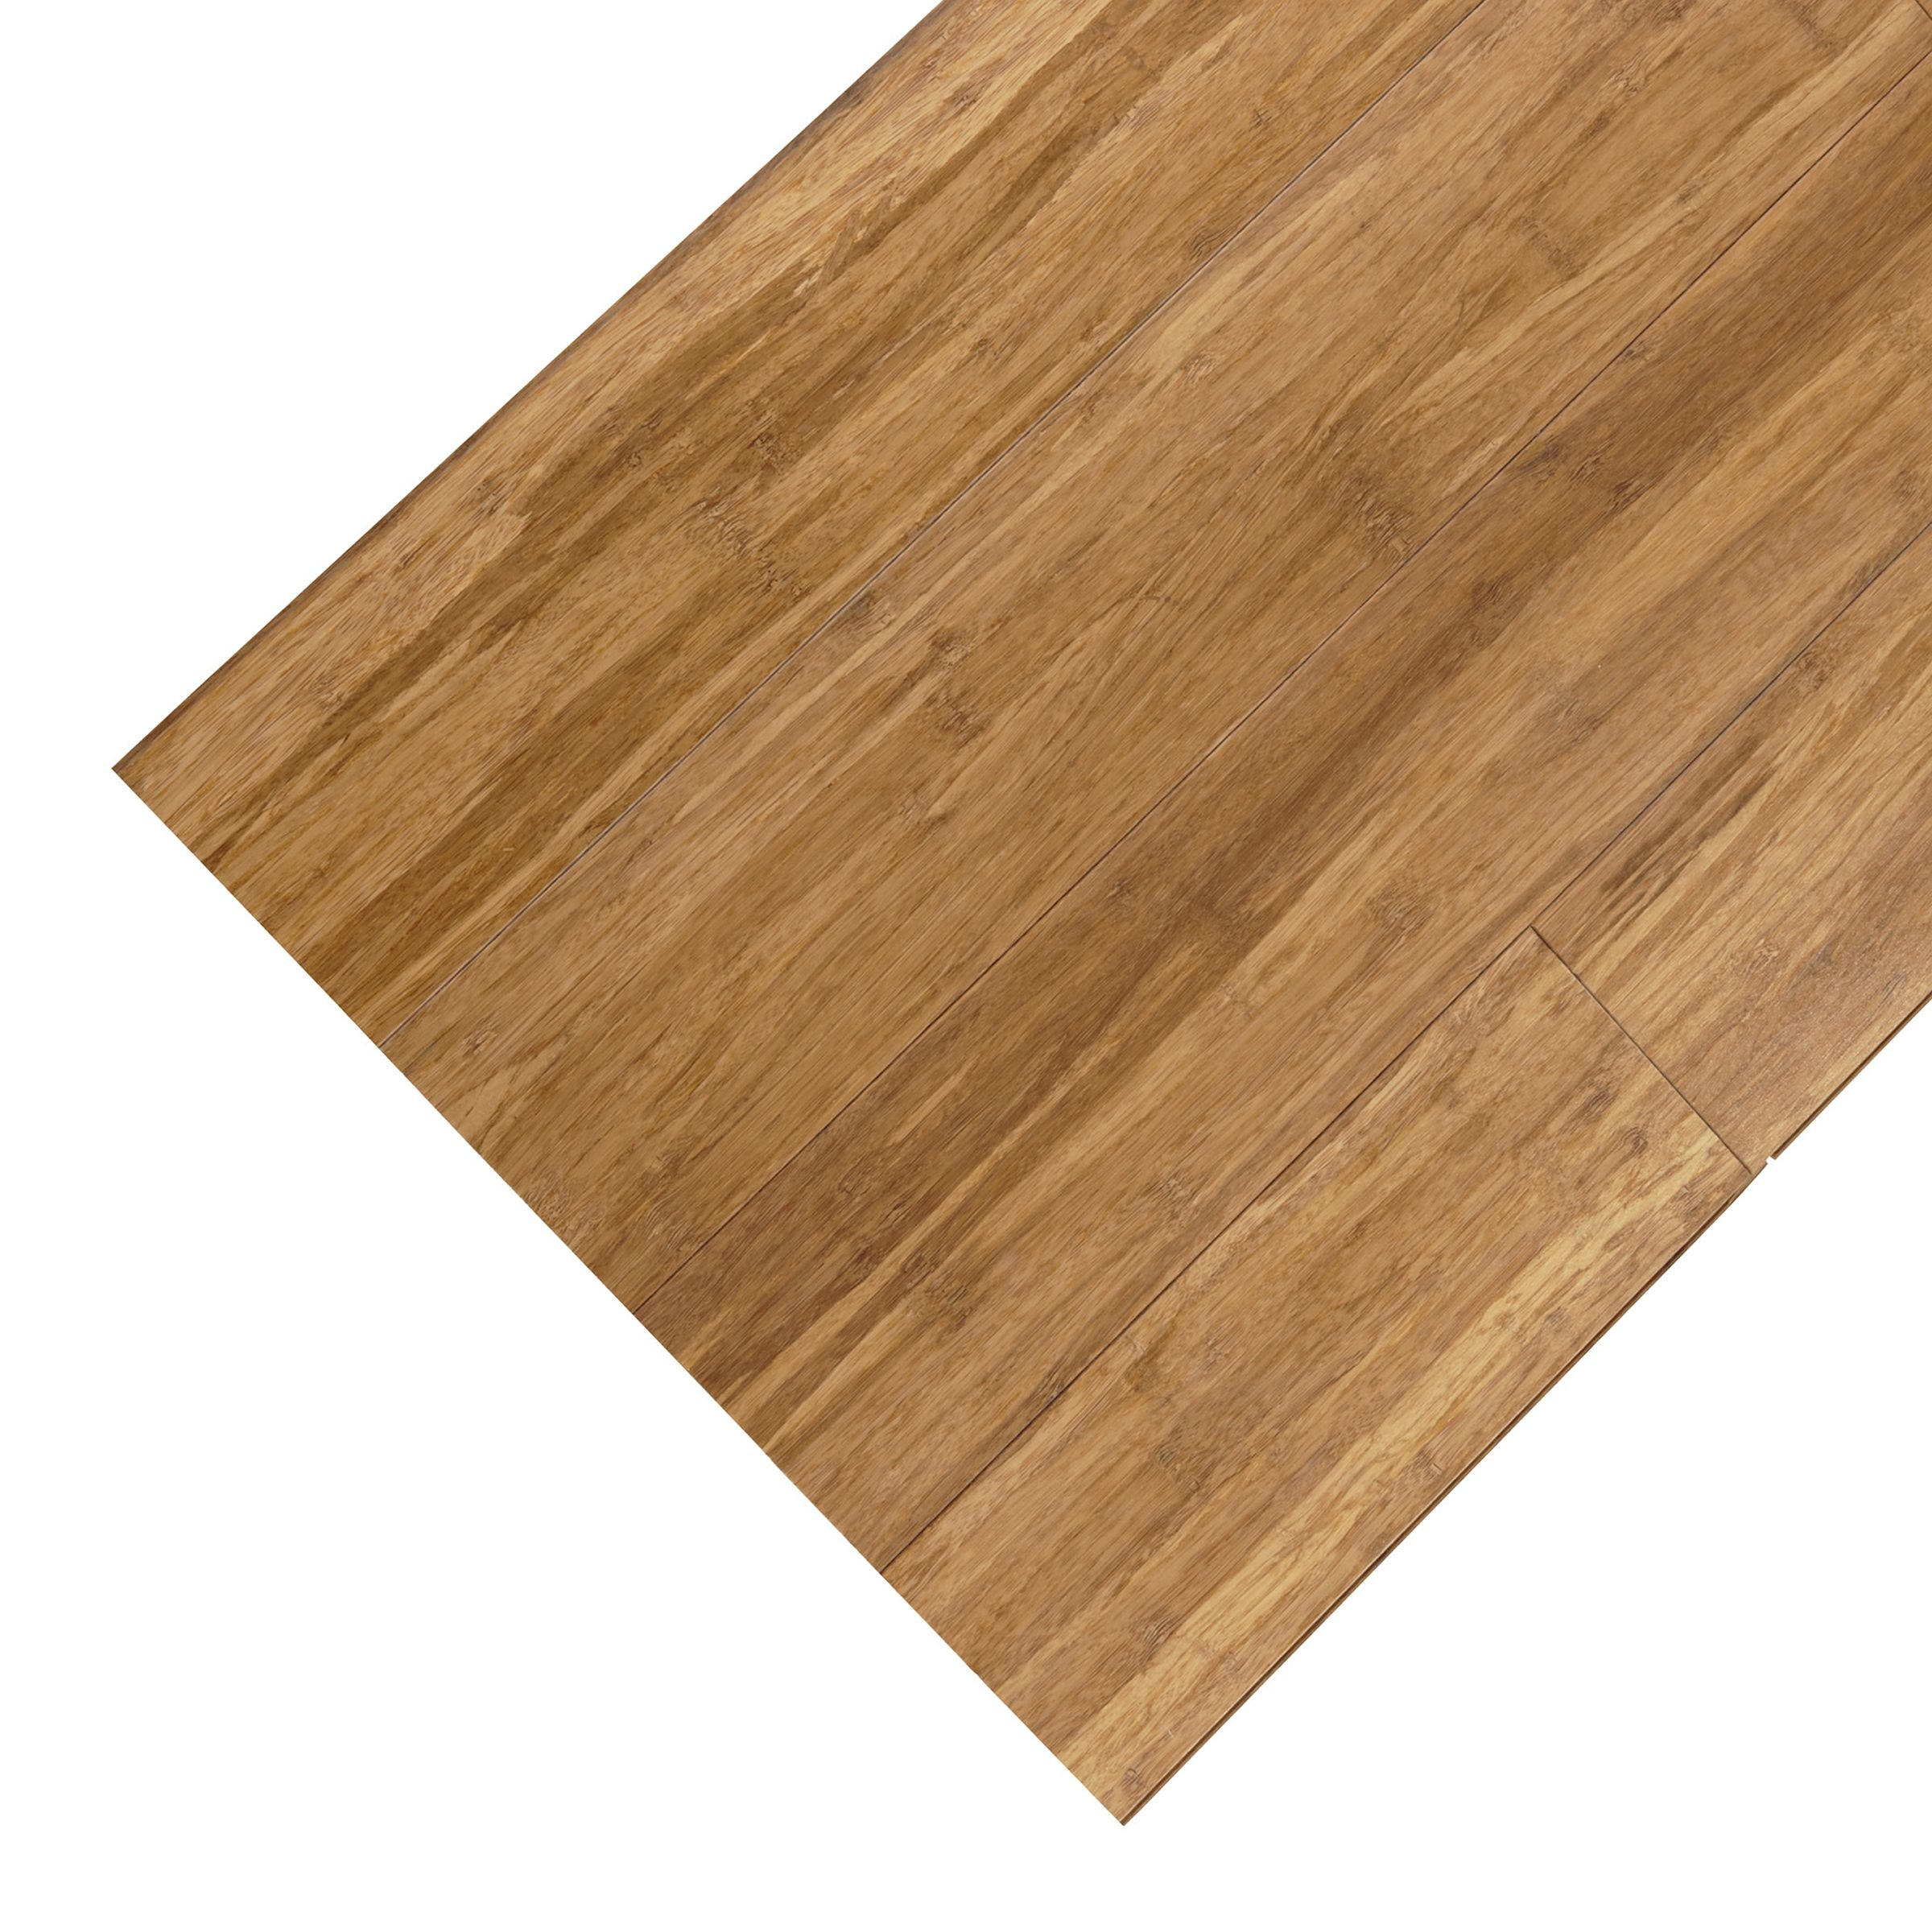 Tarkett 10mm Coffee Bamboo Flooring - Bunnings Warehouse | Reno for ...